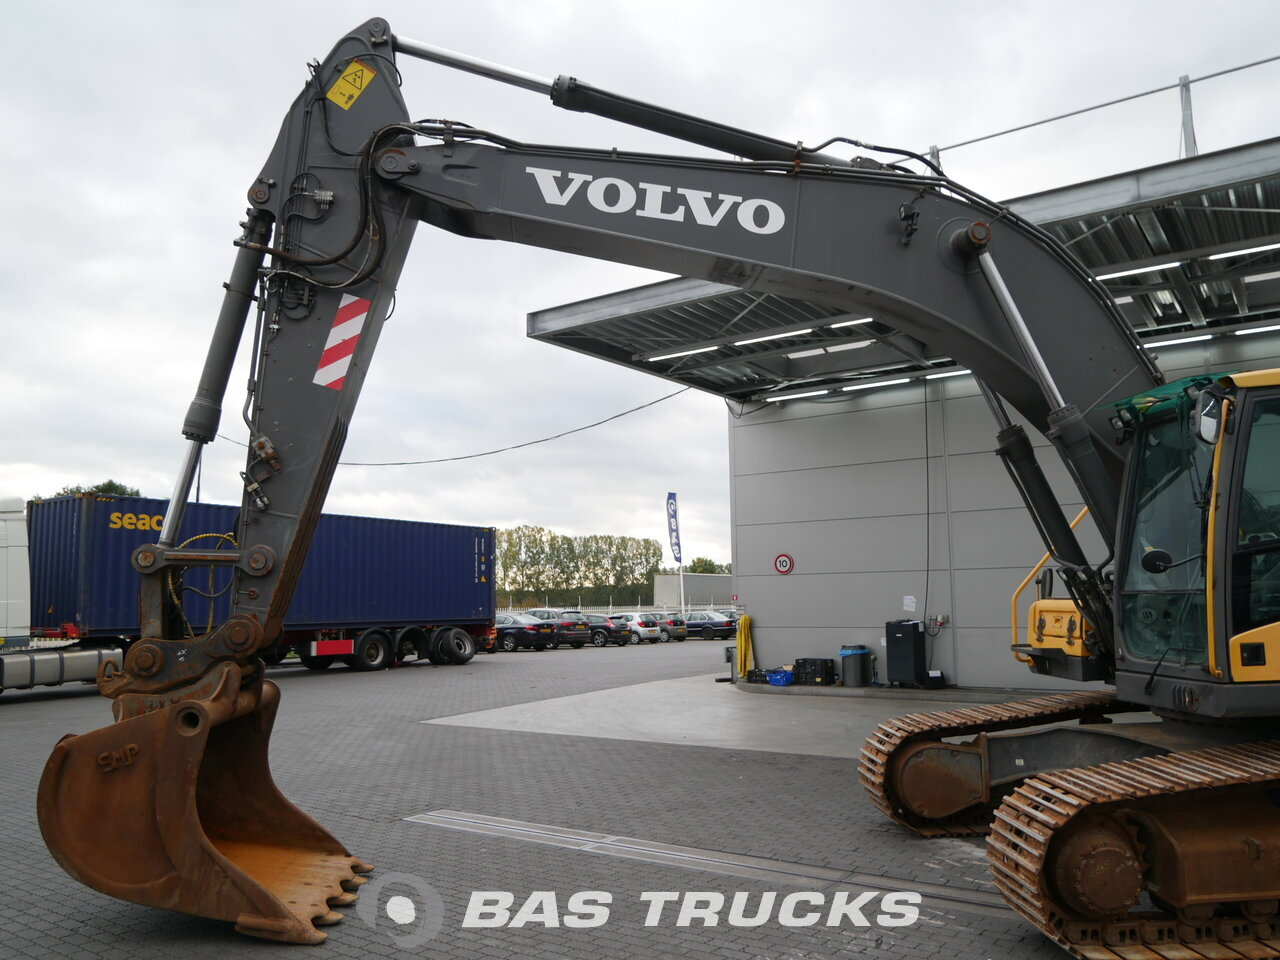 For sale at BAS Trucks: Volvo EC290CL Excavator 01/2007